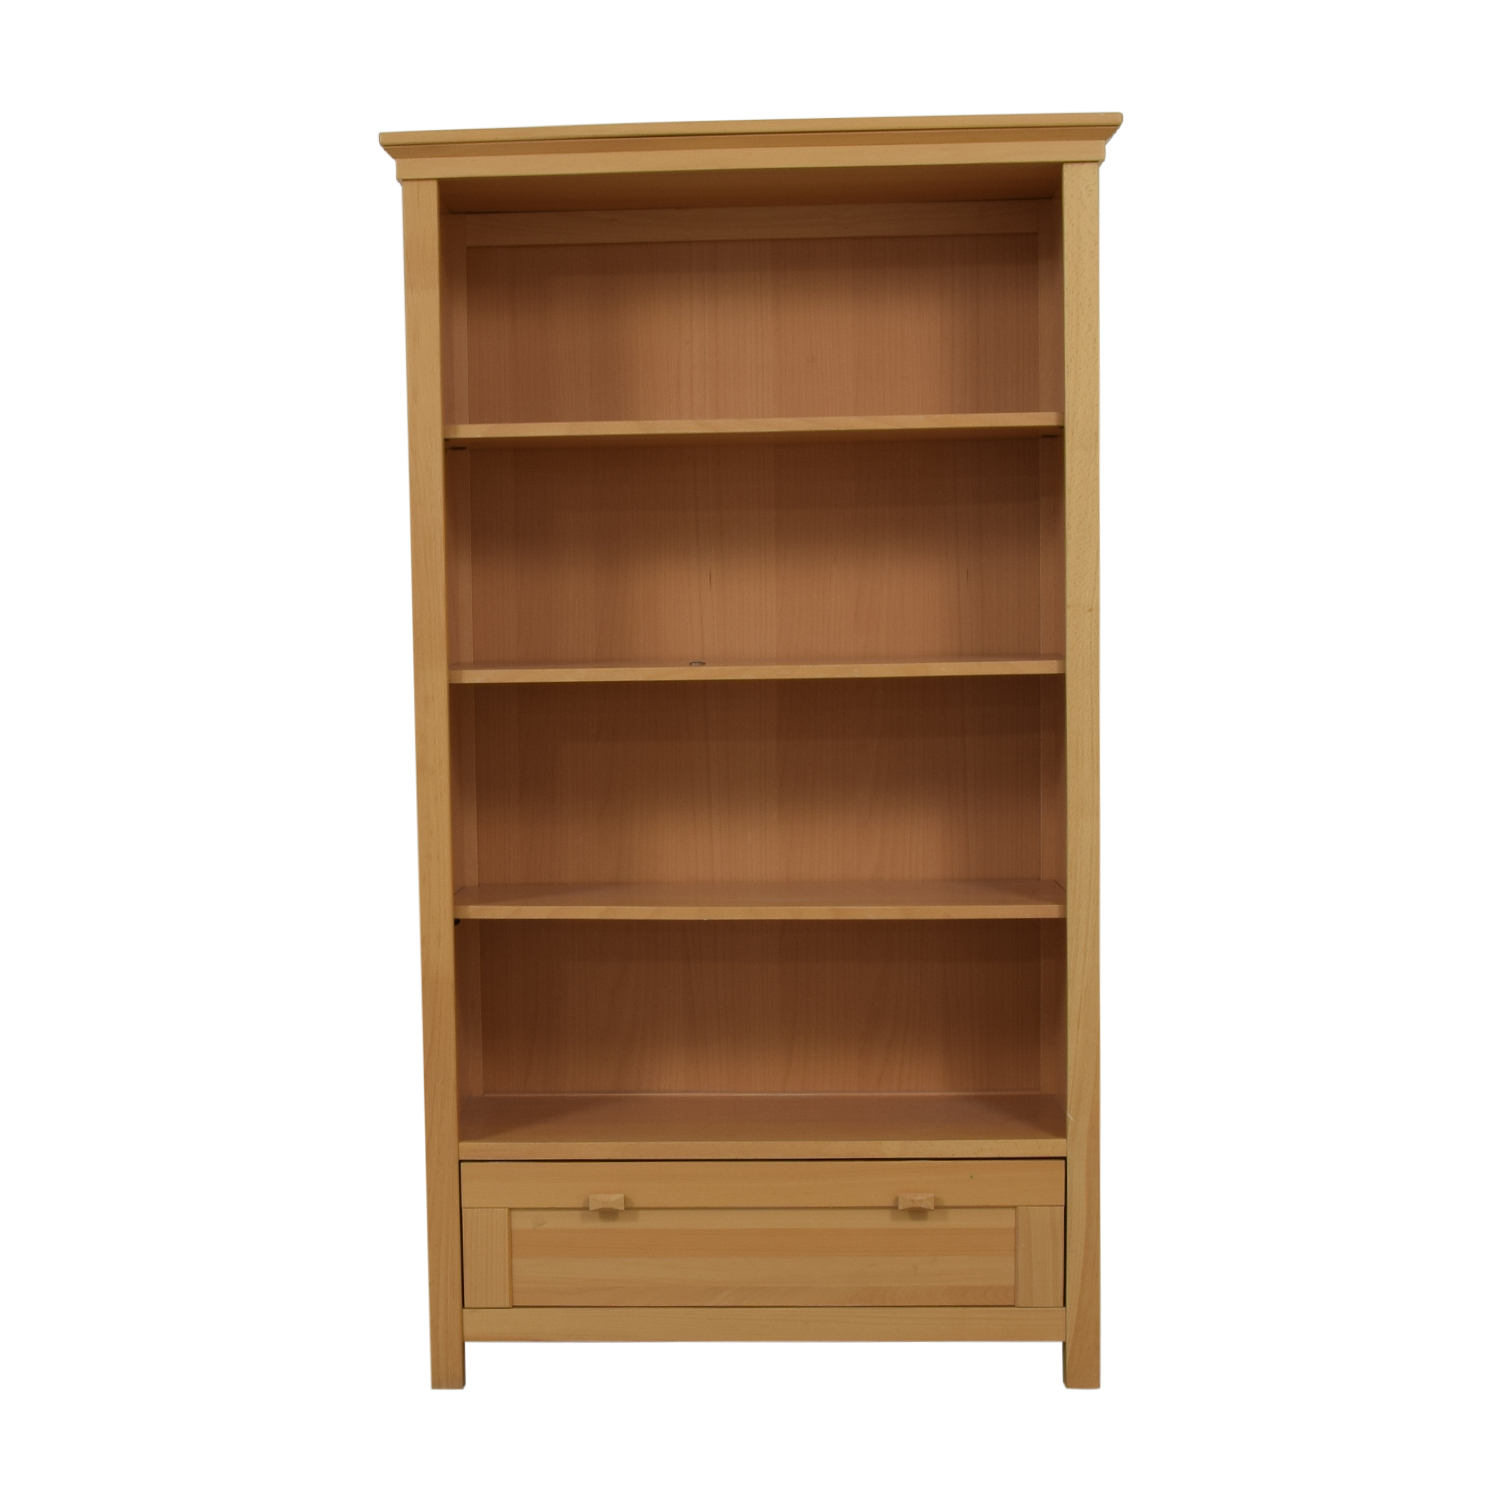 Romina Romina Single Drawer Wood Bookcase beige